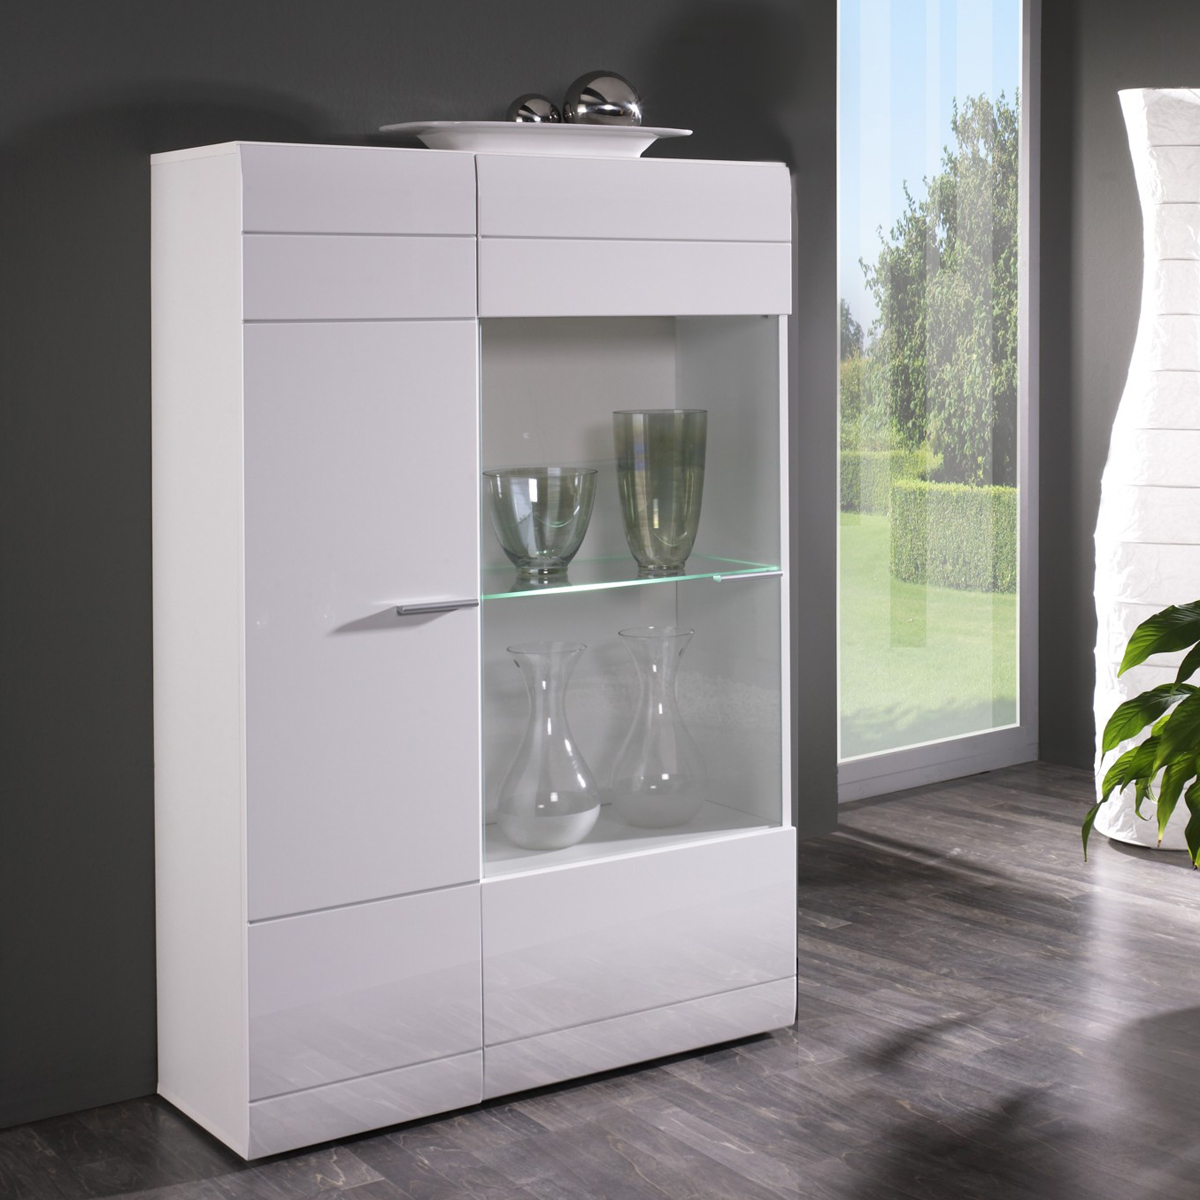 vitrine links carero kleiner wohnzimmer schrank wei hochglanz mit glas ebay. Black Bedroom Furniture Sets. Home Design Ideas